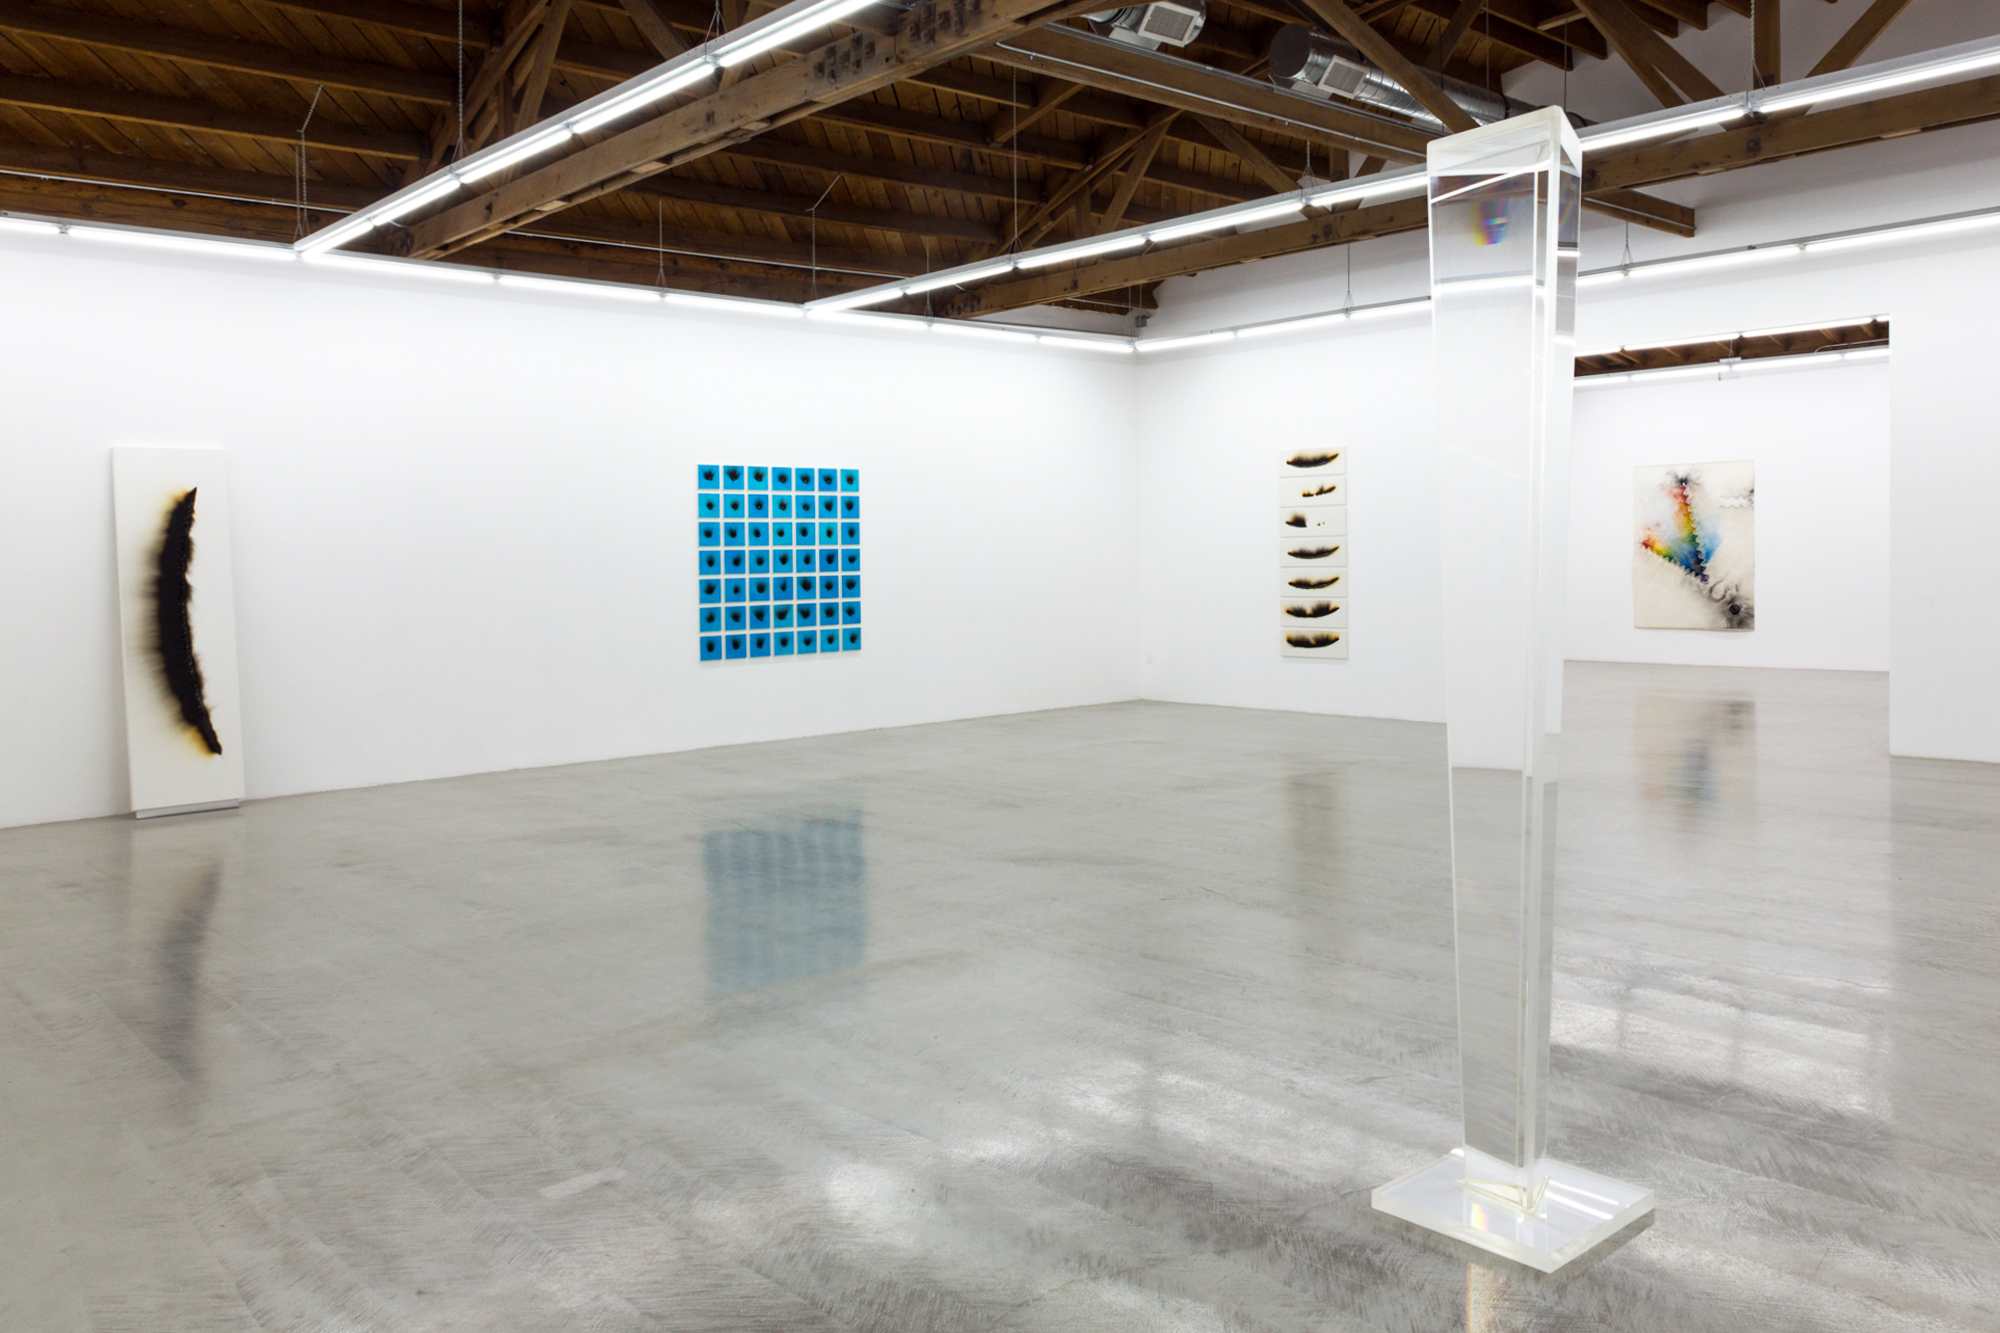 Installation view of Charles Ross' Solar Burns, Explosion Drawings and Prisms.